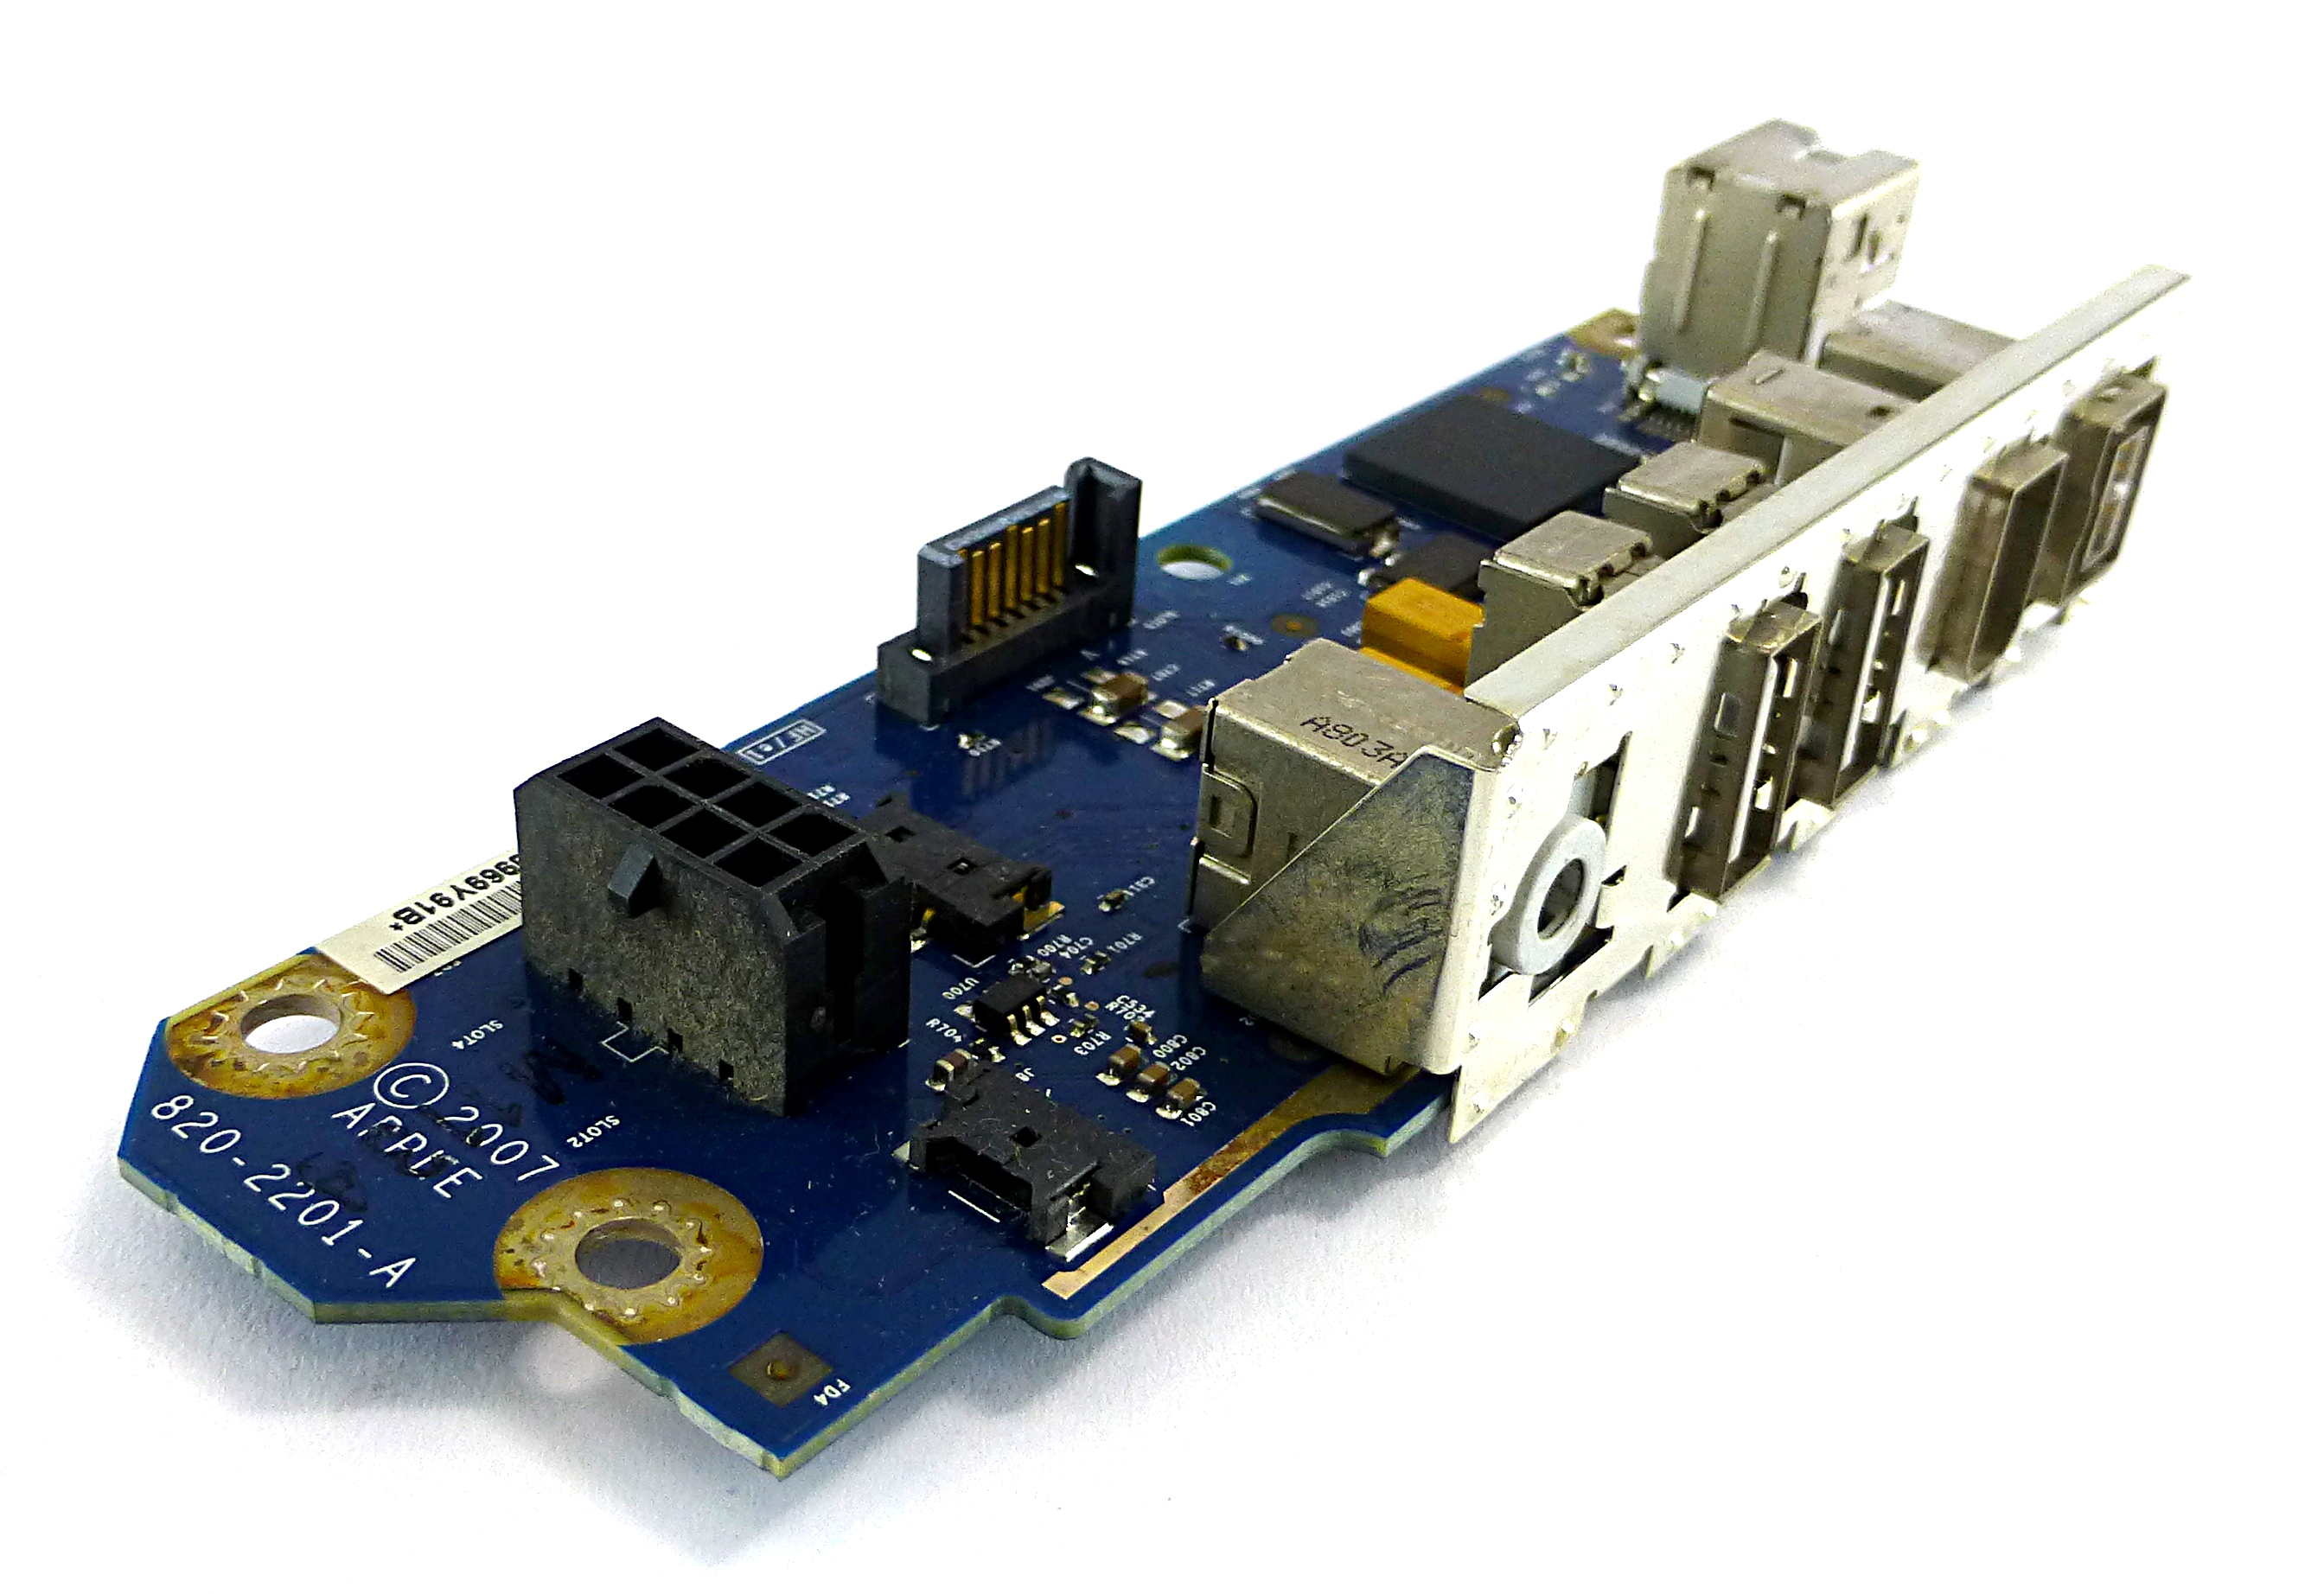 820-2201-A Apple Front I/O Board for MacPro A1186 (EMC 2180) (Early 2008)